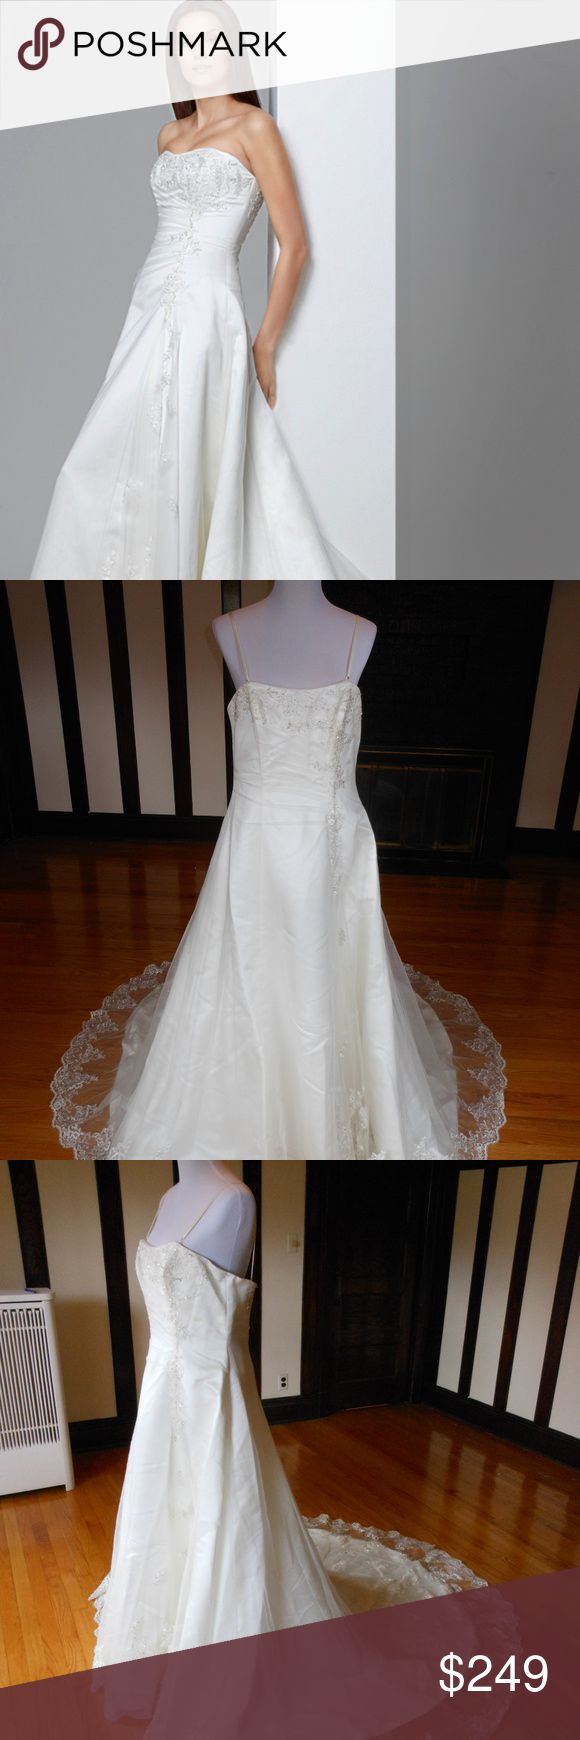 """Rosetta Nicolini Wedding Dress RMN0507 This is an Authentic ROSETTA NICOLINI Bridal Wedding Dress Gown. The style number of the dress is RNM0507. It has a gorgeous A line style with a fabulous long train. This dress is brand new in great condition with the original label and tags. It was never worn.  Size: 18 Bust: 40""""-42"""" Waist: 34"""" Hips: 48""""  Color: Ivory Rosetta Nicolini Dresses Wedding"""